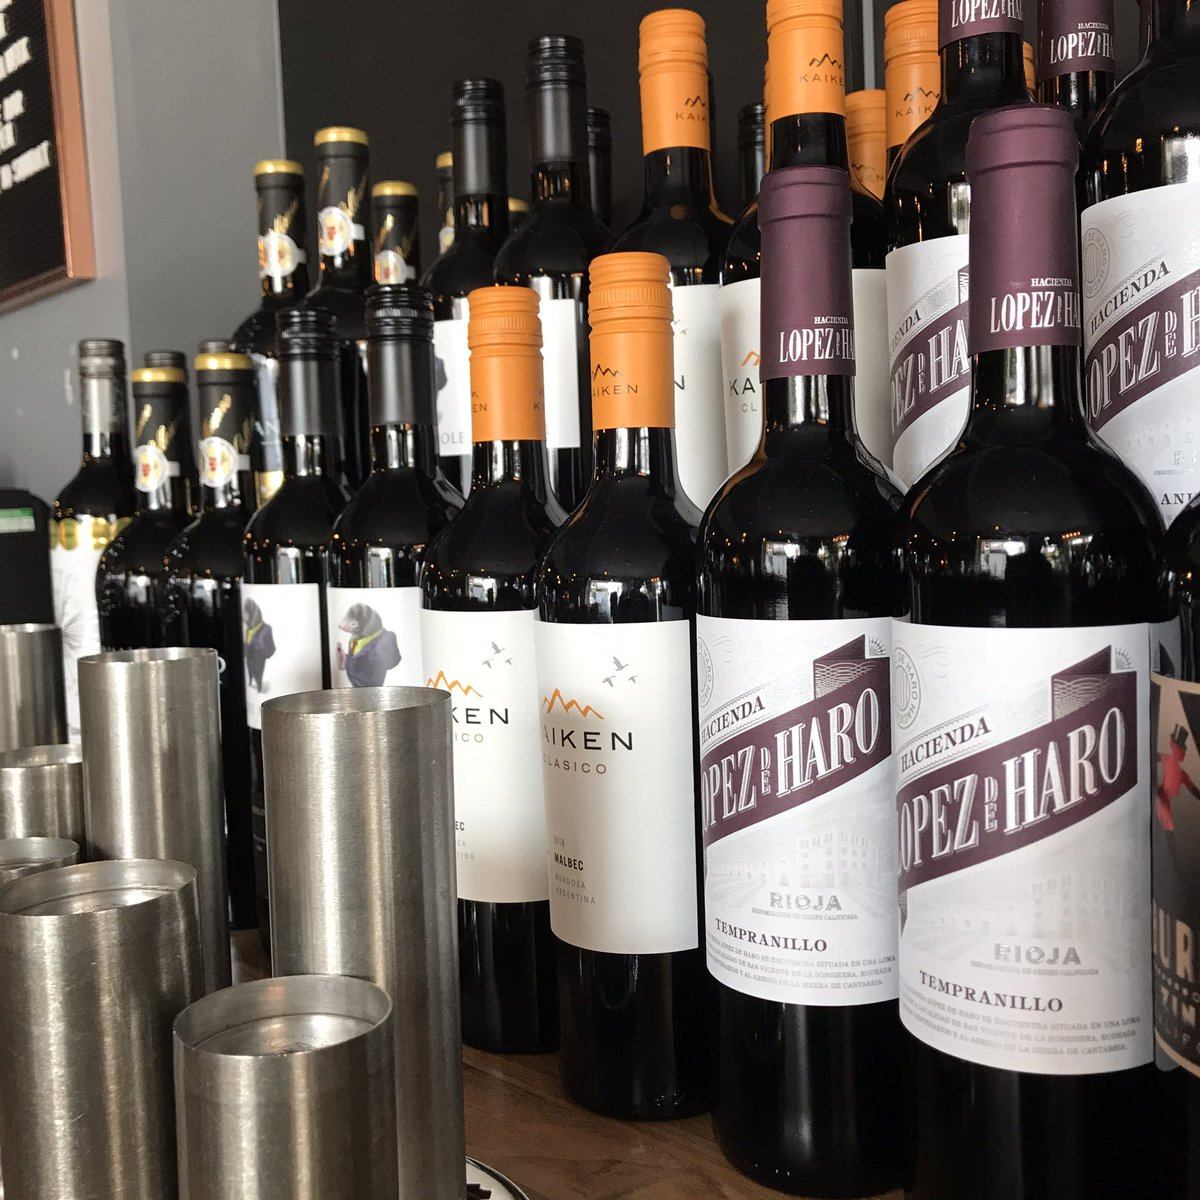 Weather is looking good and our wine bar is open...::enough said!  #wineoclock #winetime #urmston #loveurnston  @IndieUrmstonpic.twitter.com/Qu5sOXC3C5